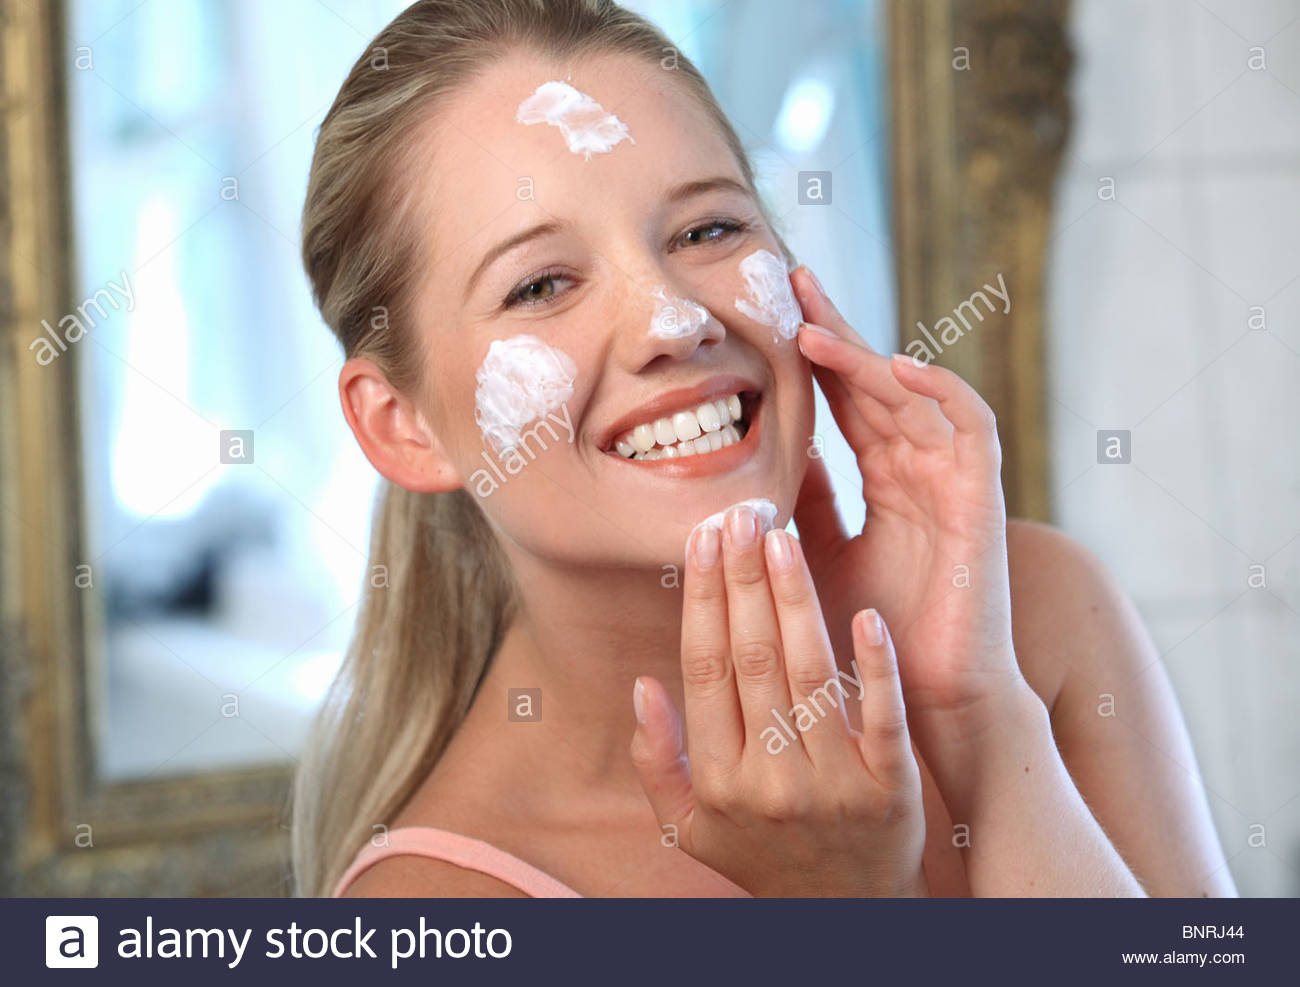 woman creaming face - Stock Image